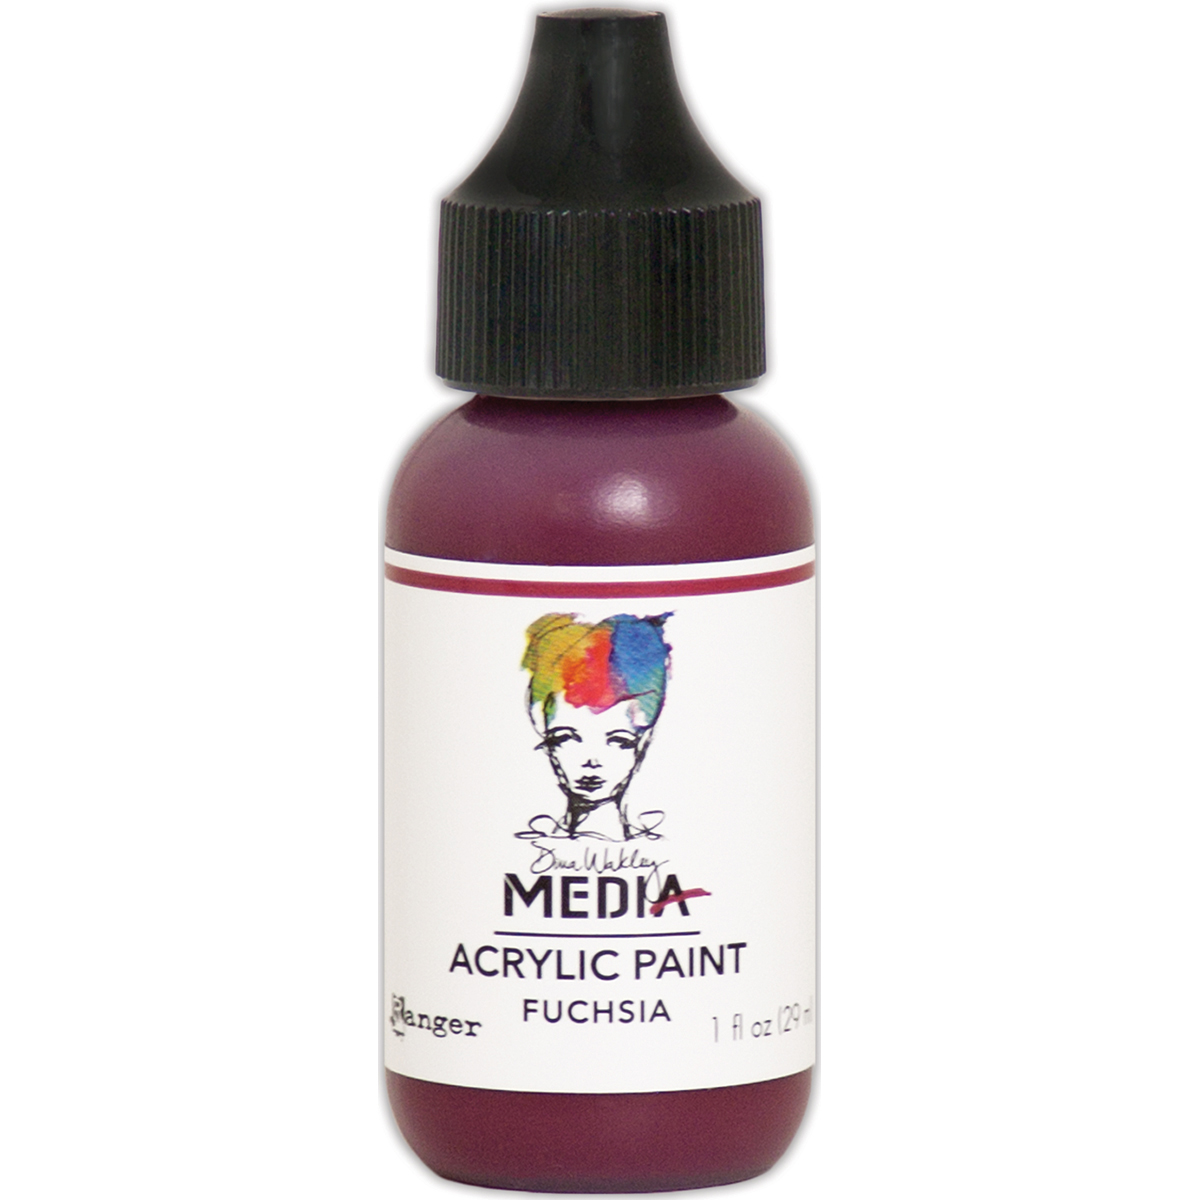 Dina Wakley Media Acrylic Paint 1oz-Fuchsia